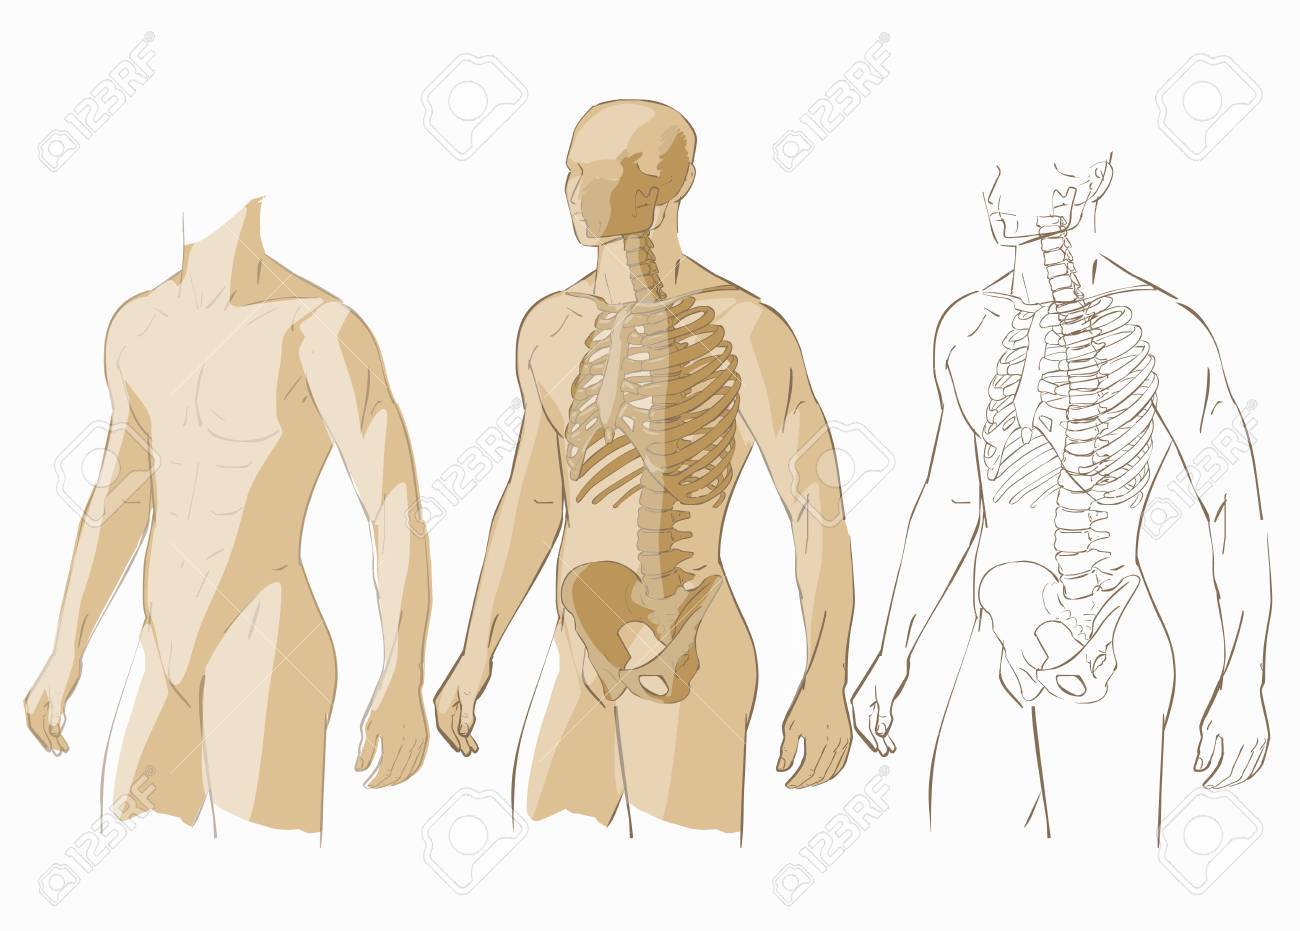 Human body parts skeletal man anatomy illustration isolated royalty human body parts skeletal man anatomy illustration isolated stock vector 62240426 ccuart Image collections